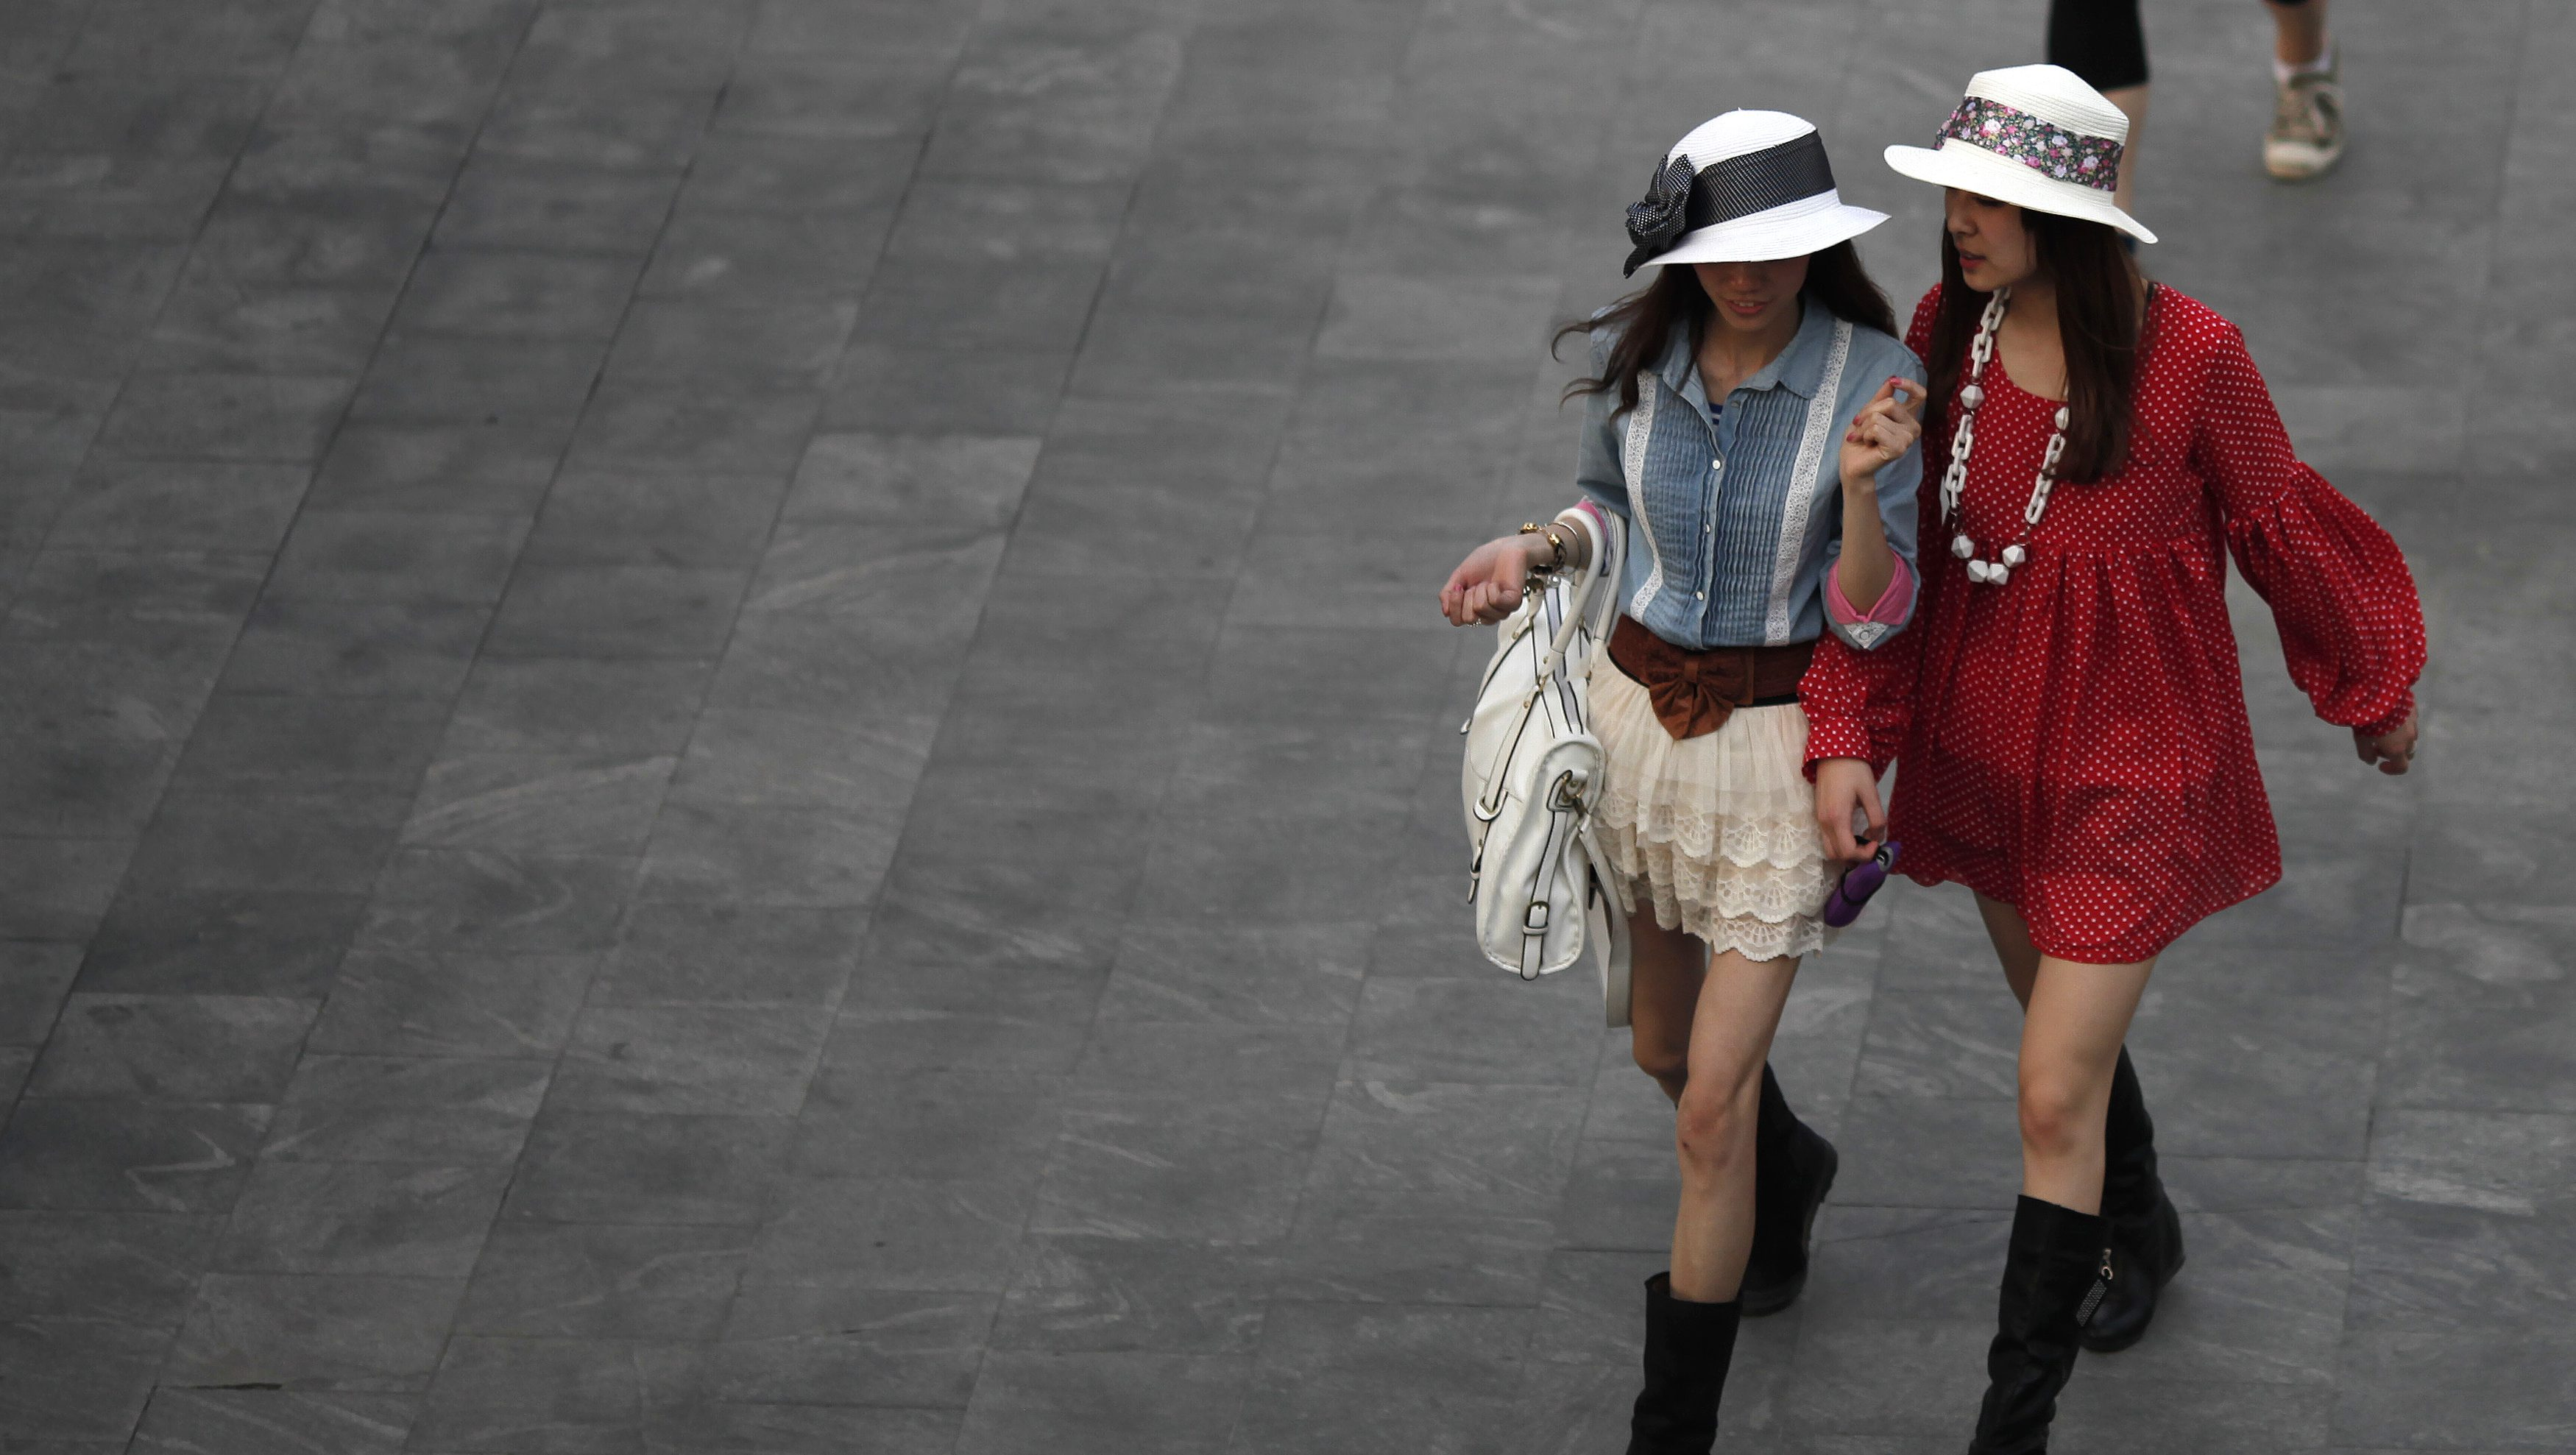 Women walk in the financial area of Pudong in Shanghai April 26, 2011.